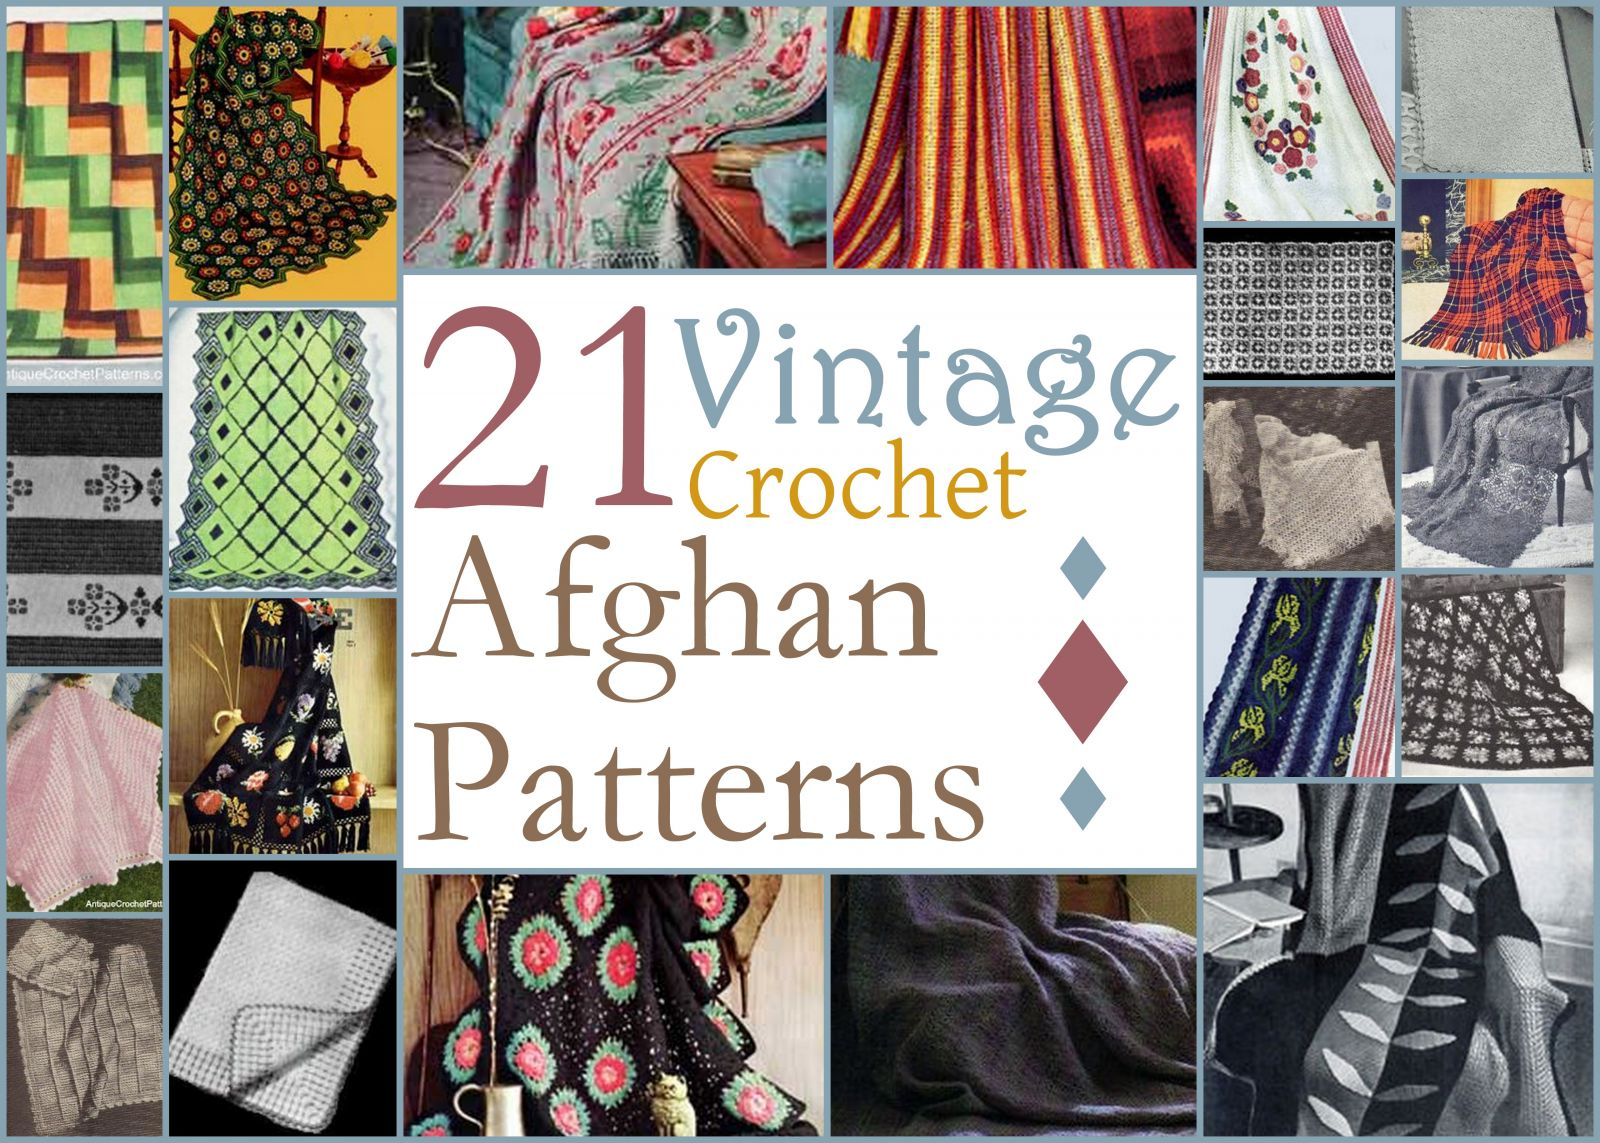 All Free Crochet Afghan Patterns : 30 Vintage Crochet Afghan Patterns ...